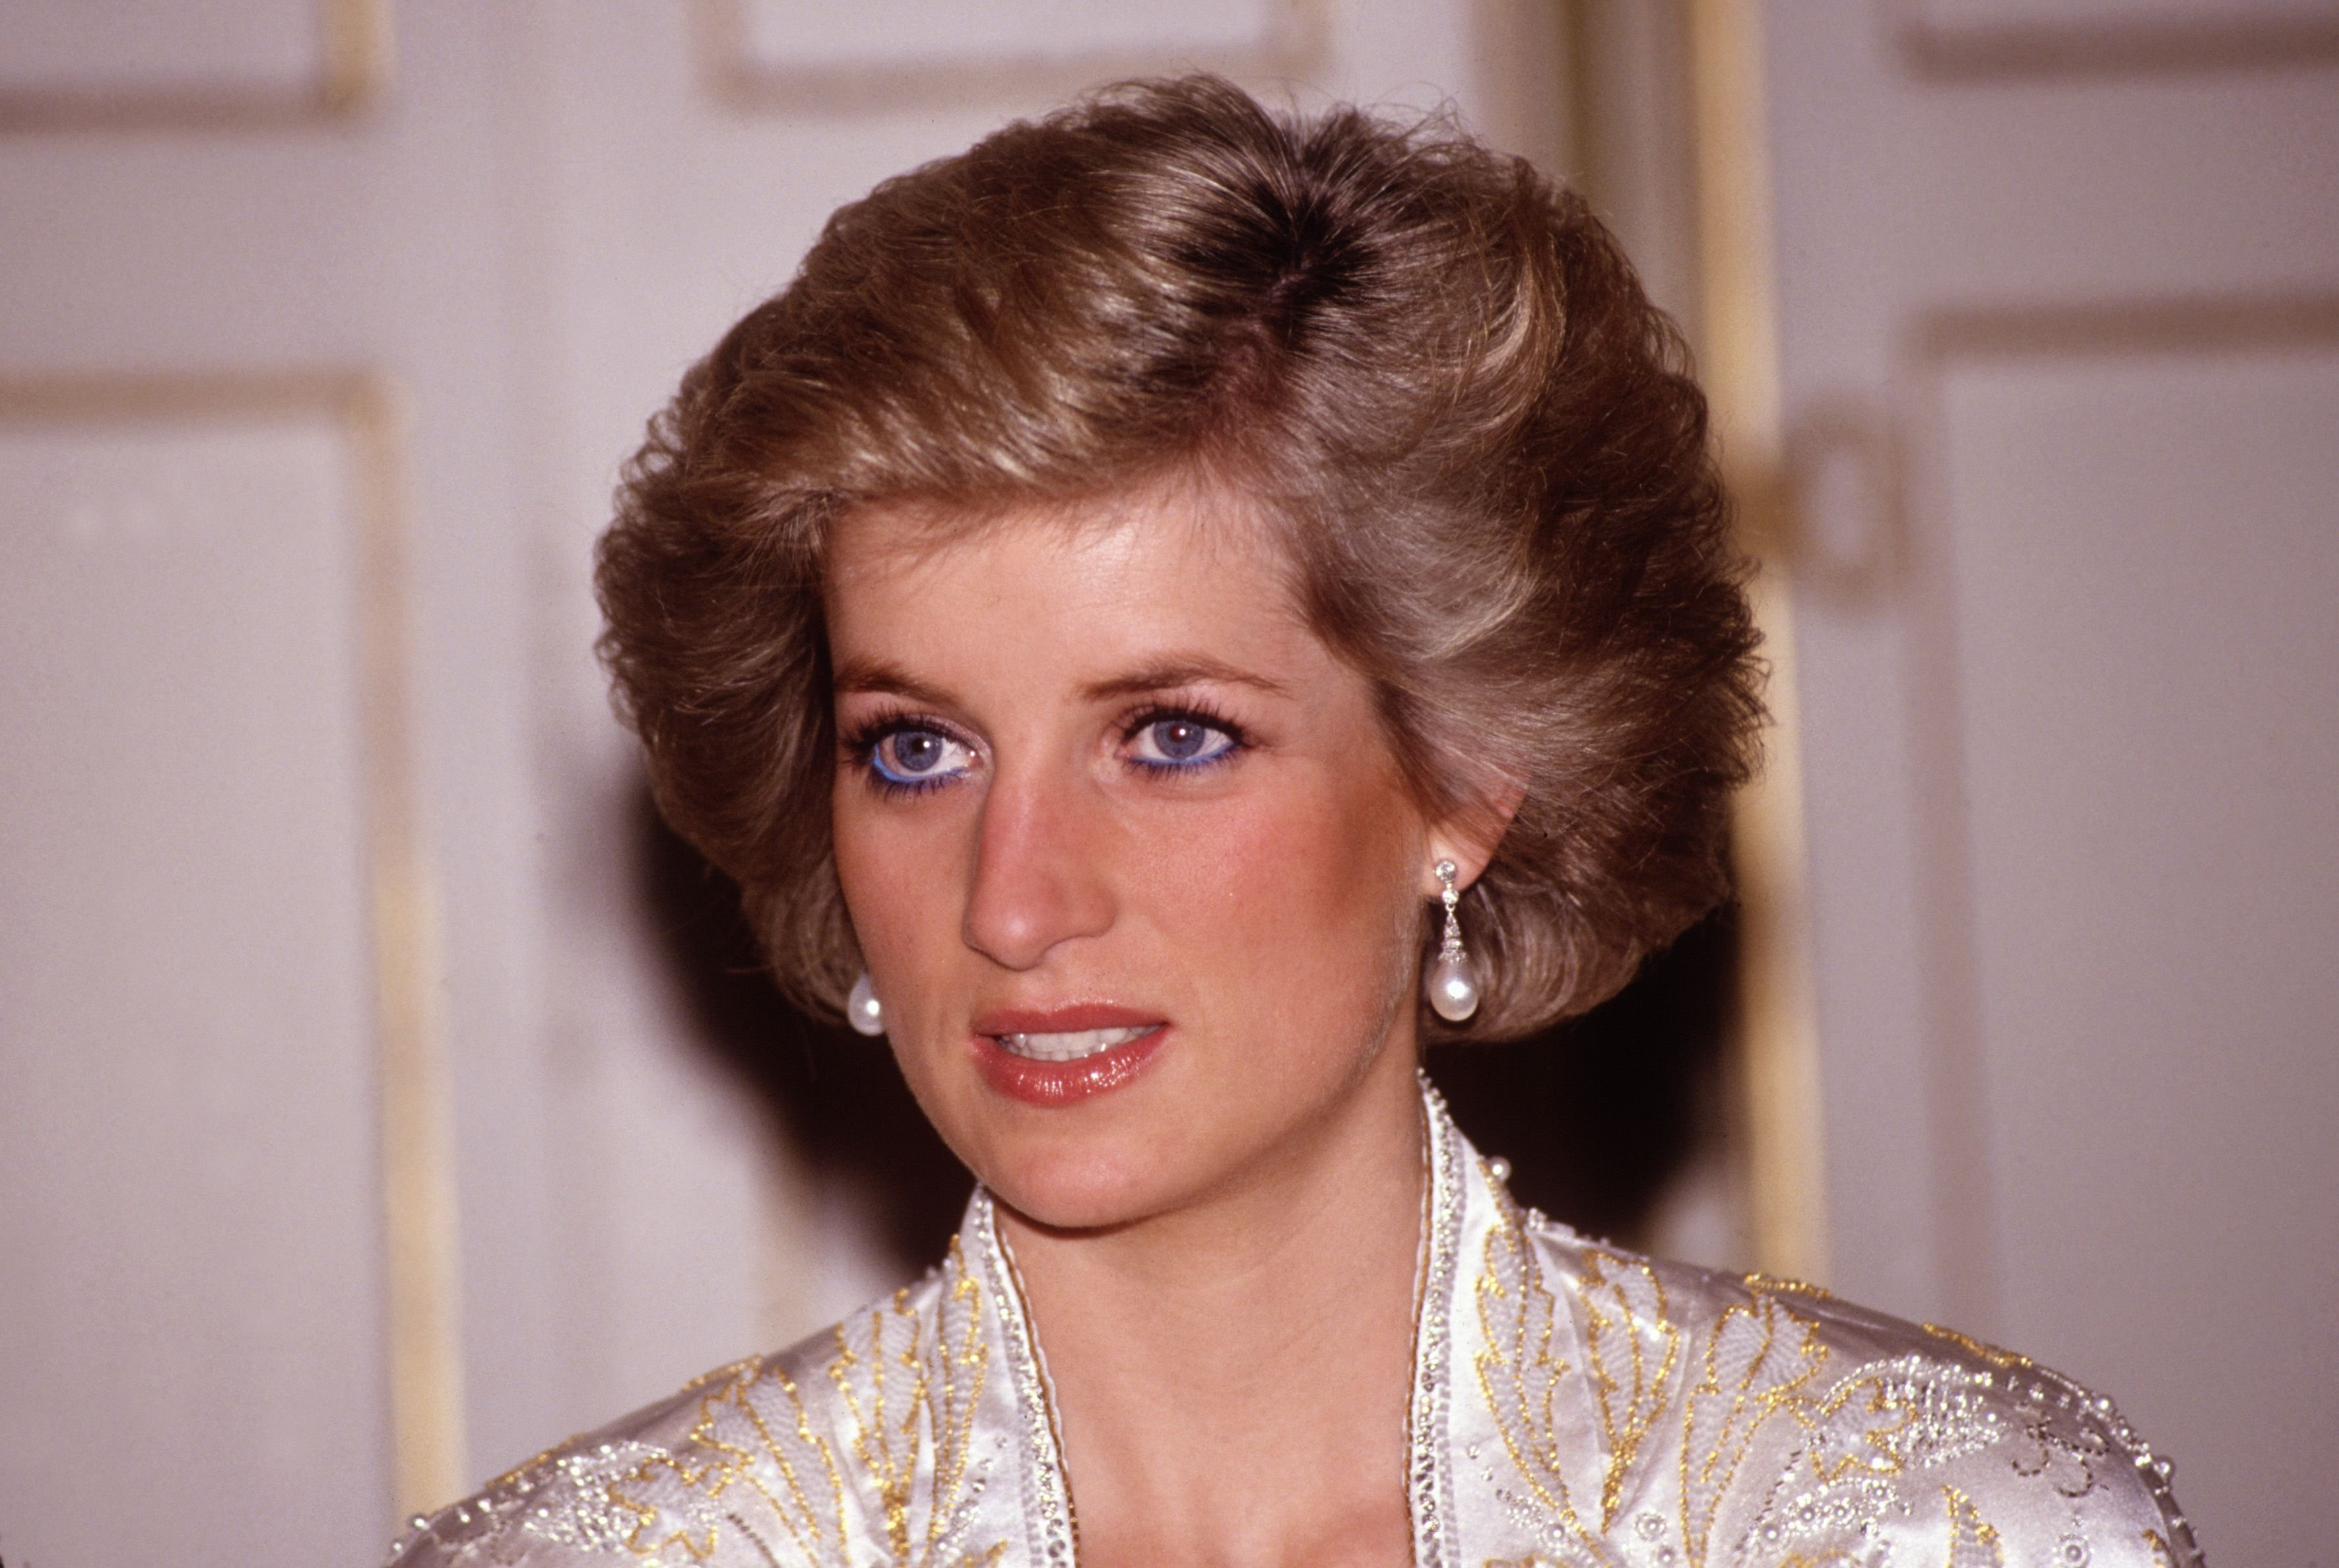 Princess Diana during a dinner given by President Mitterand on November 1, 1988, at the Elysee Palace in Paris, France. | Source: Getty images